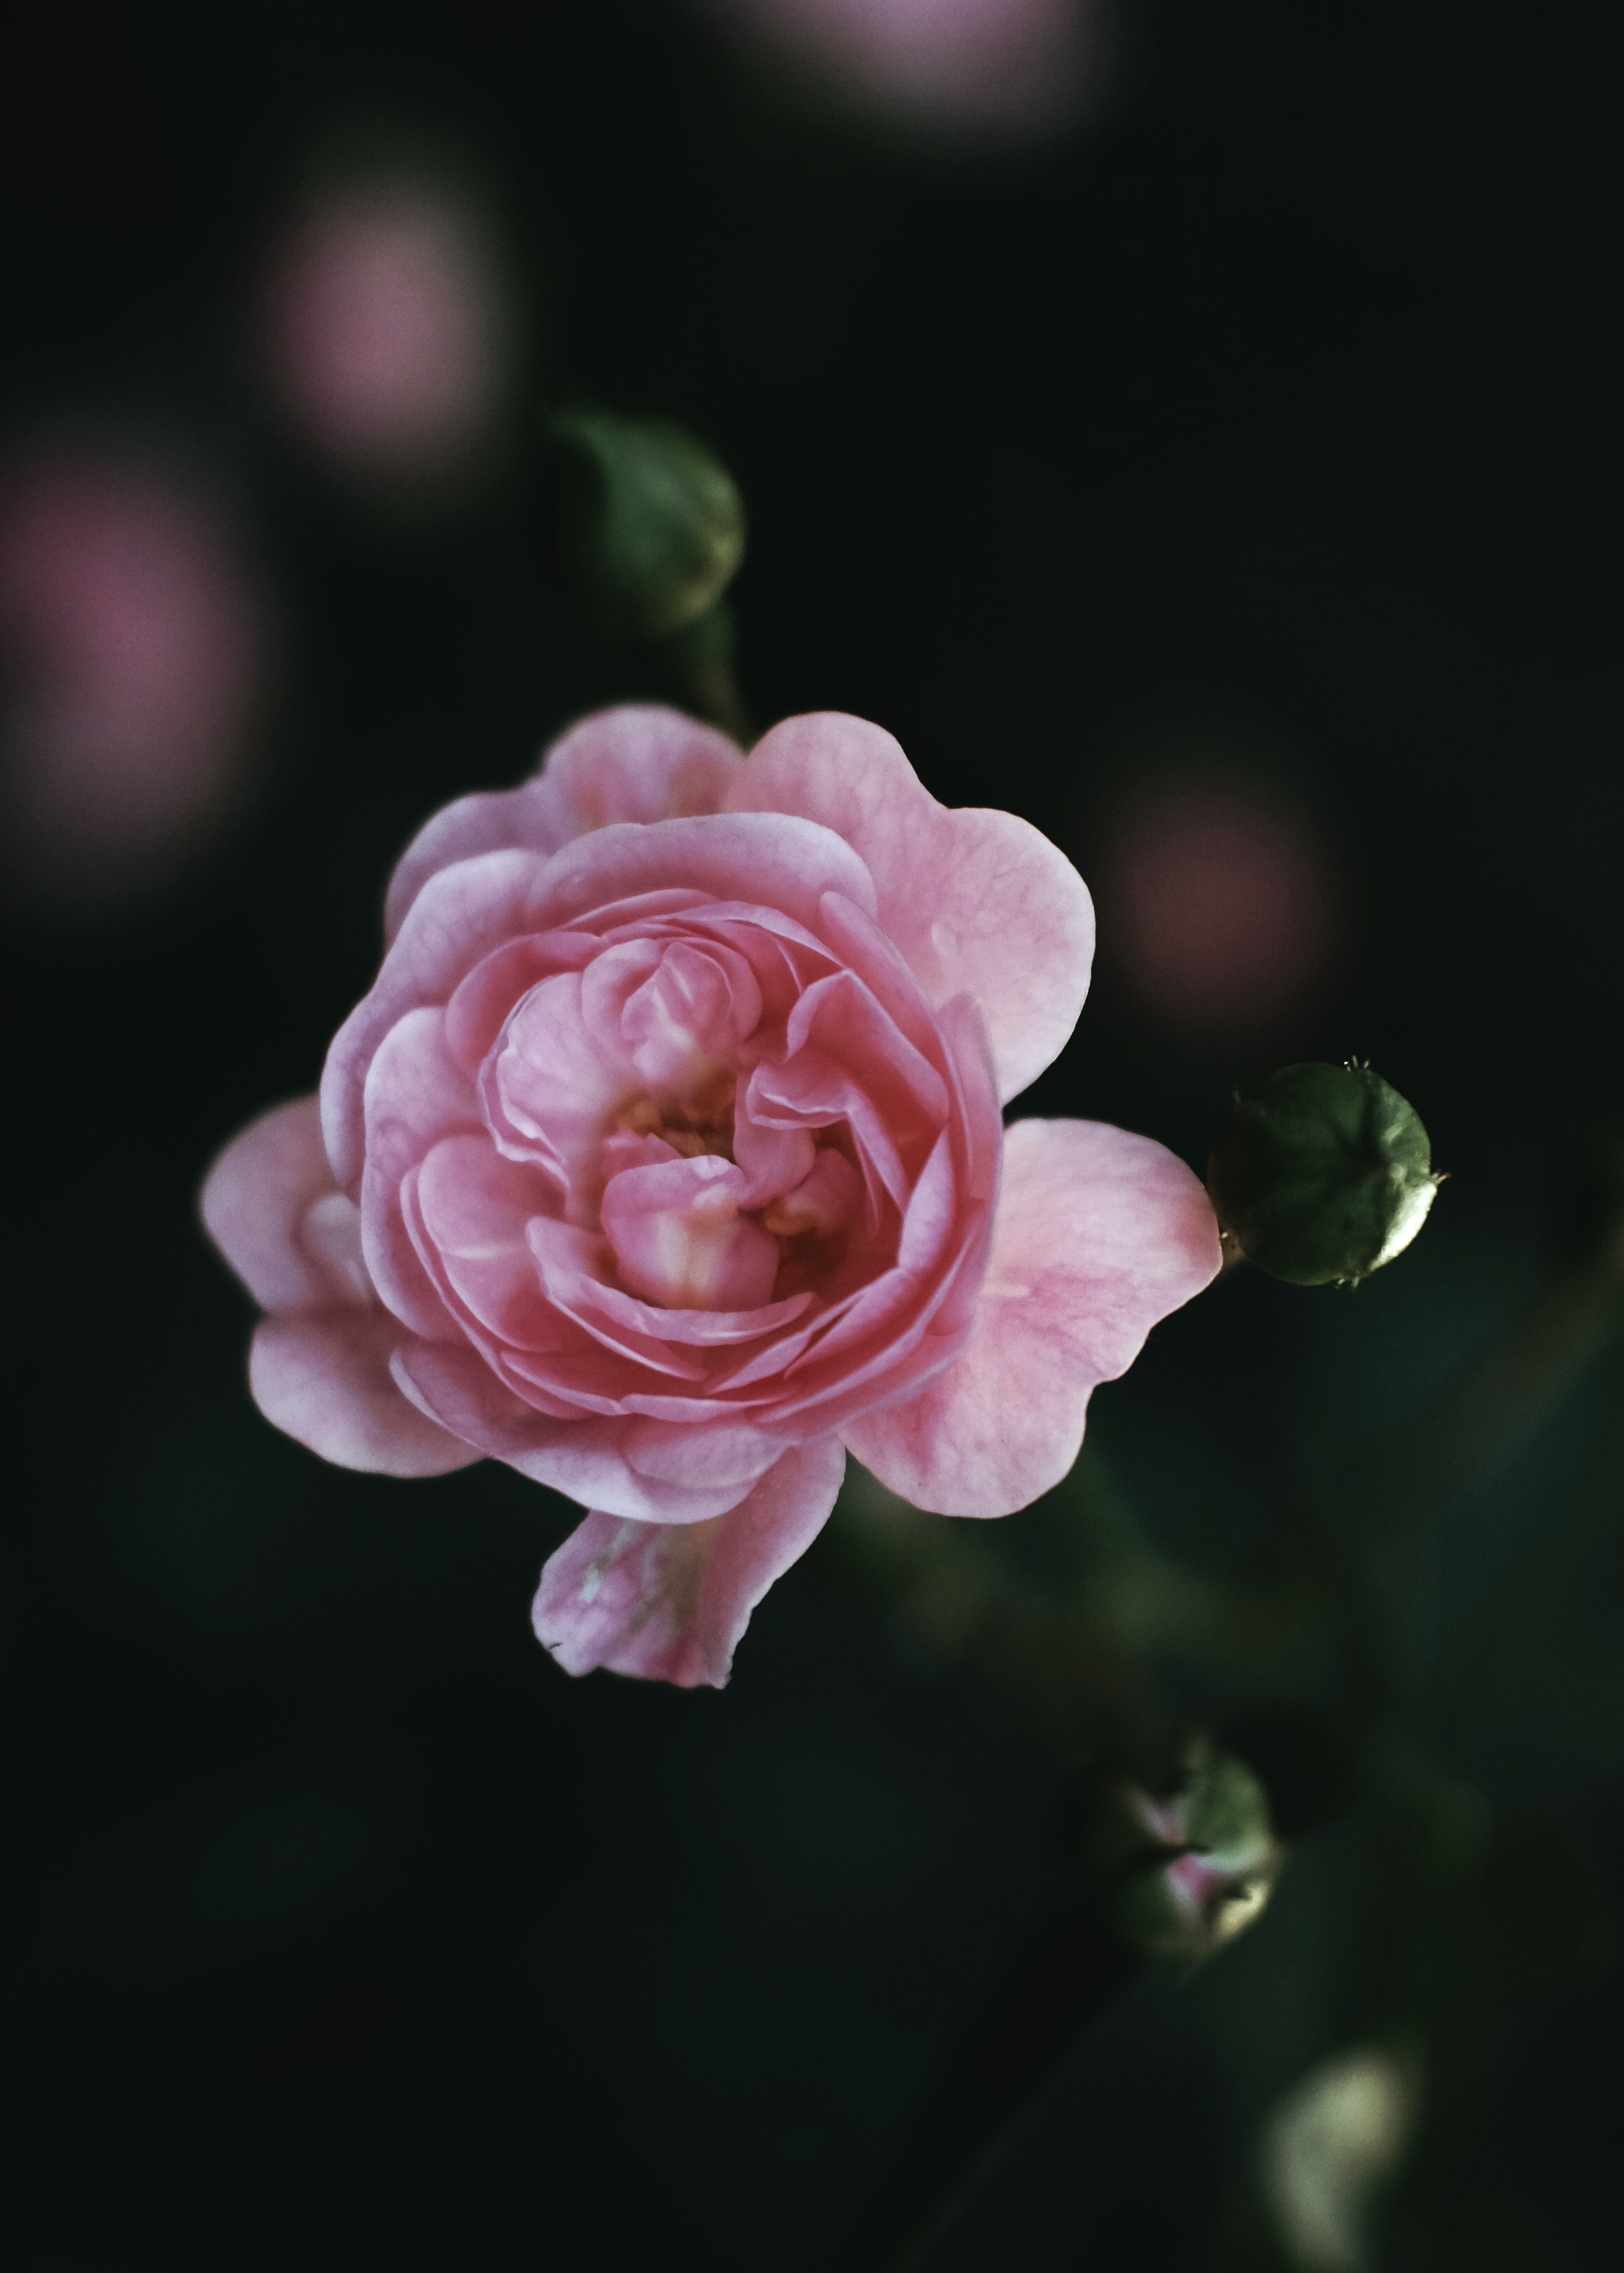 close-up photo of pink petaled flower